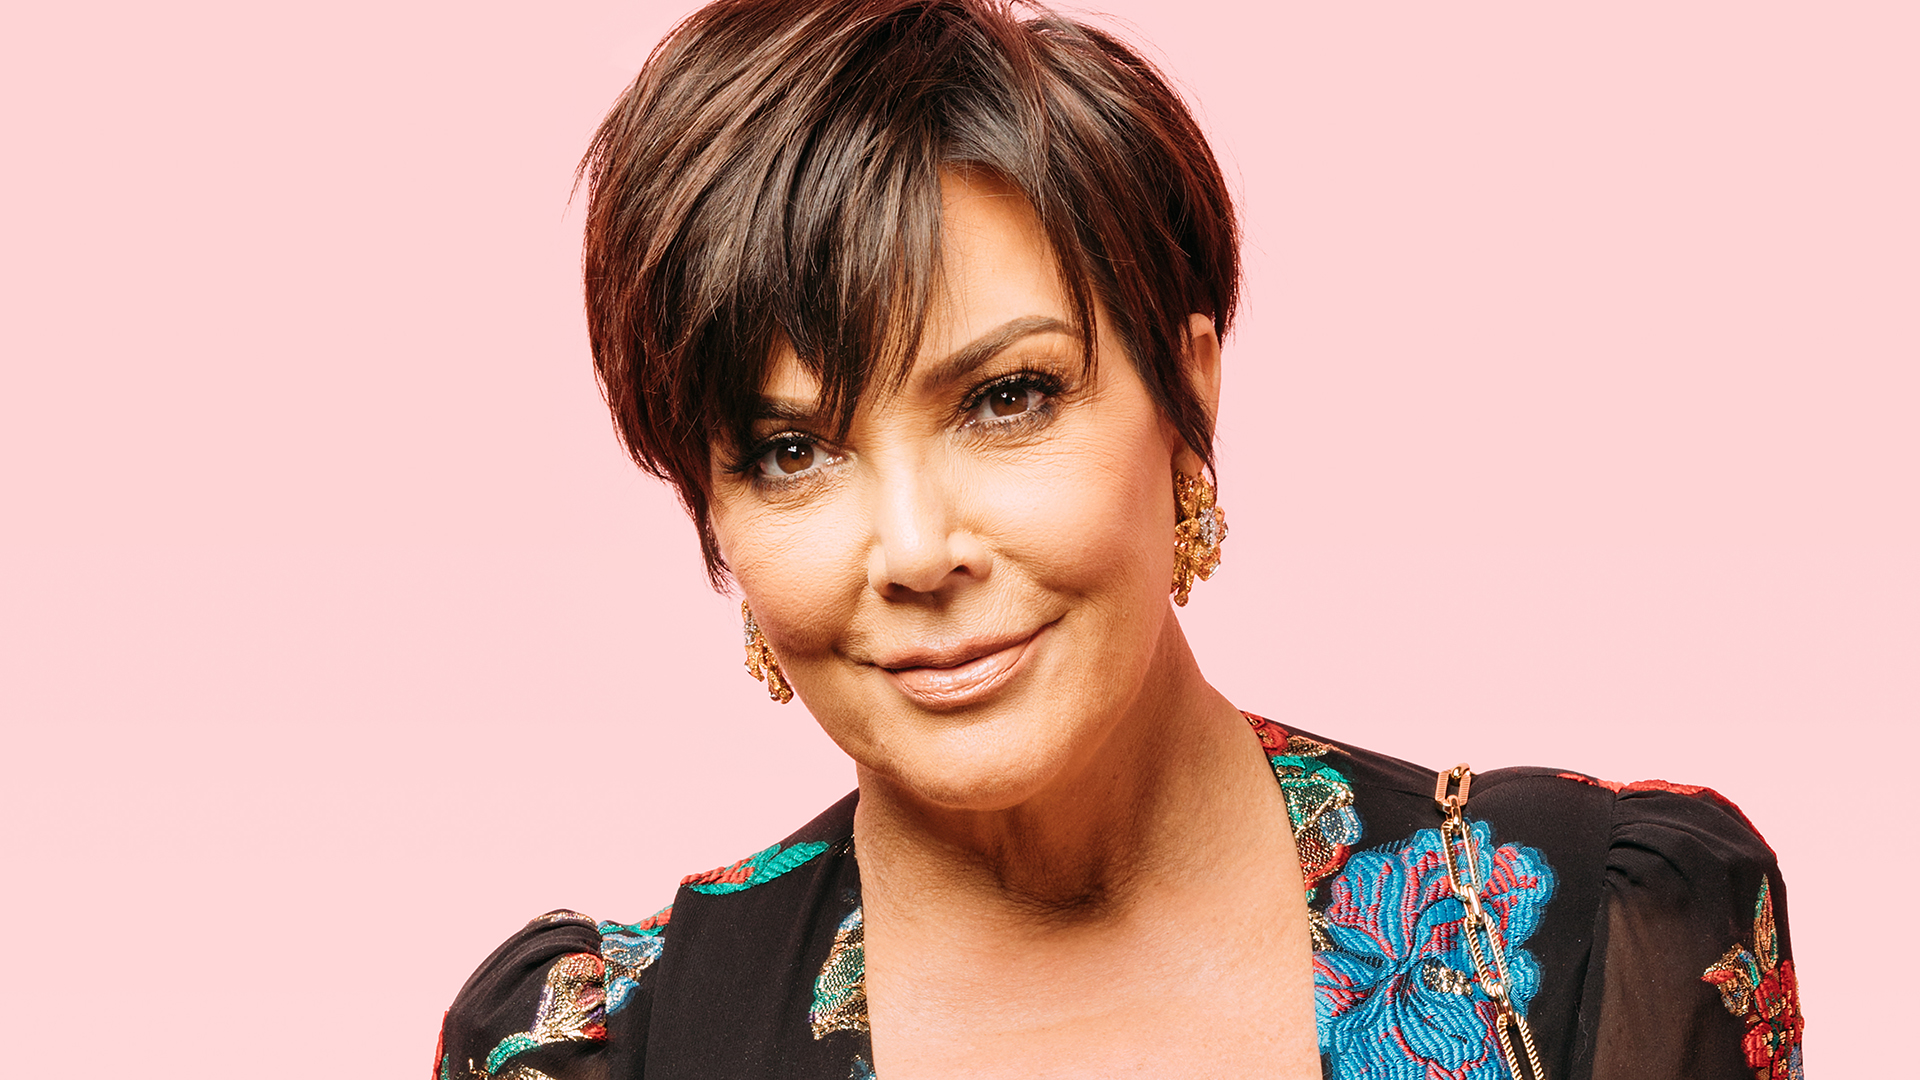 Chris Jenner is one of the main character of Kardashian's TV empire